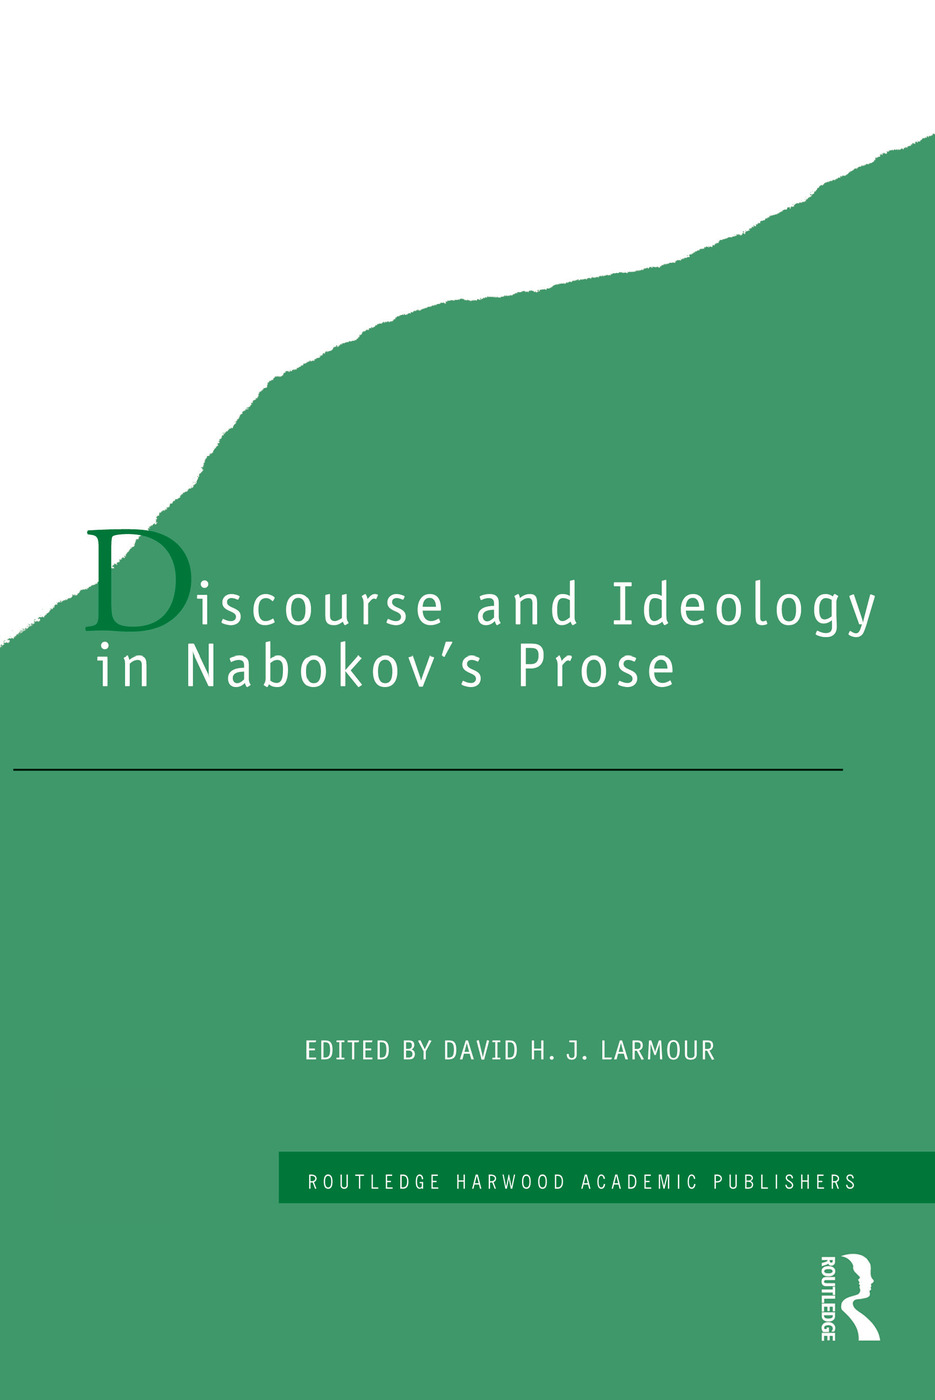 Discourse and Ideology in Nabokov's Prose